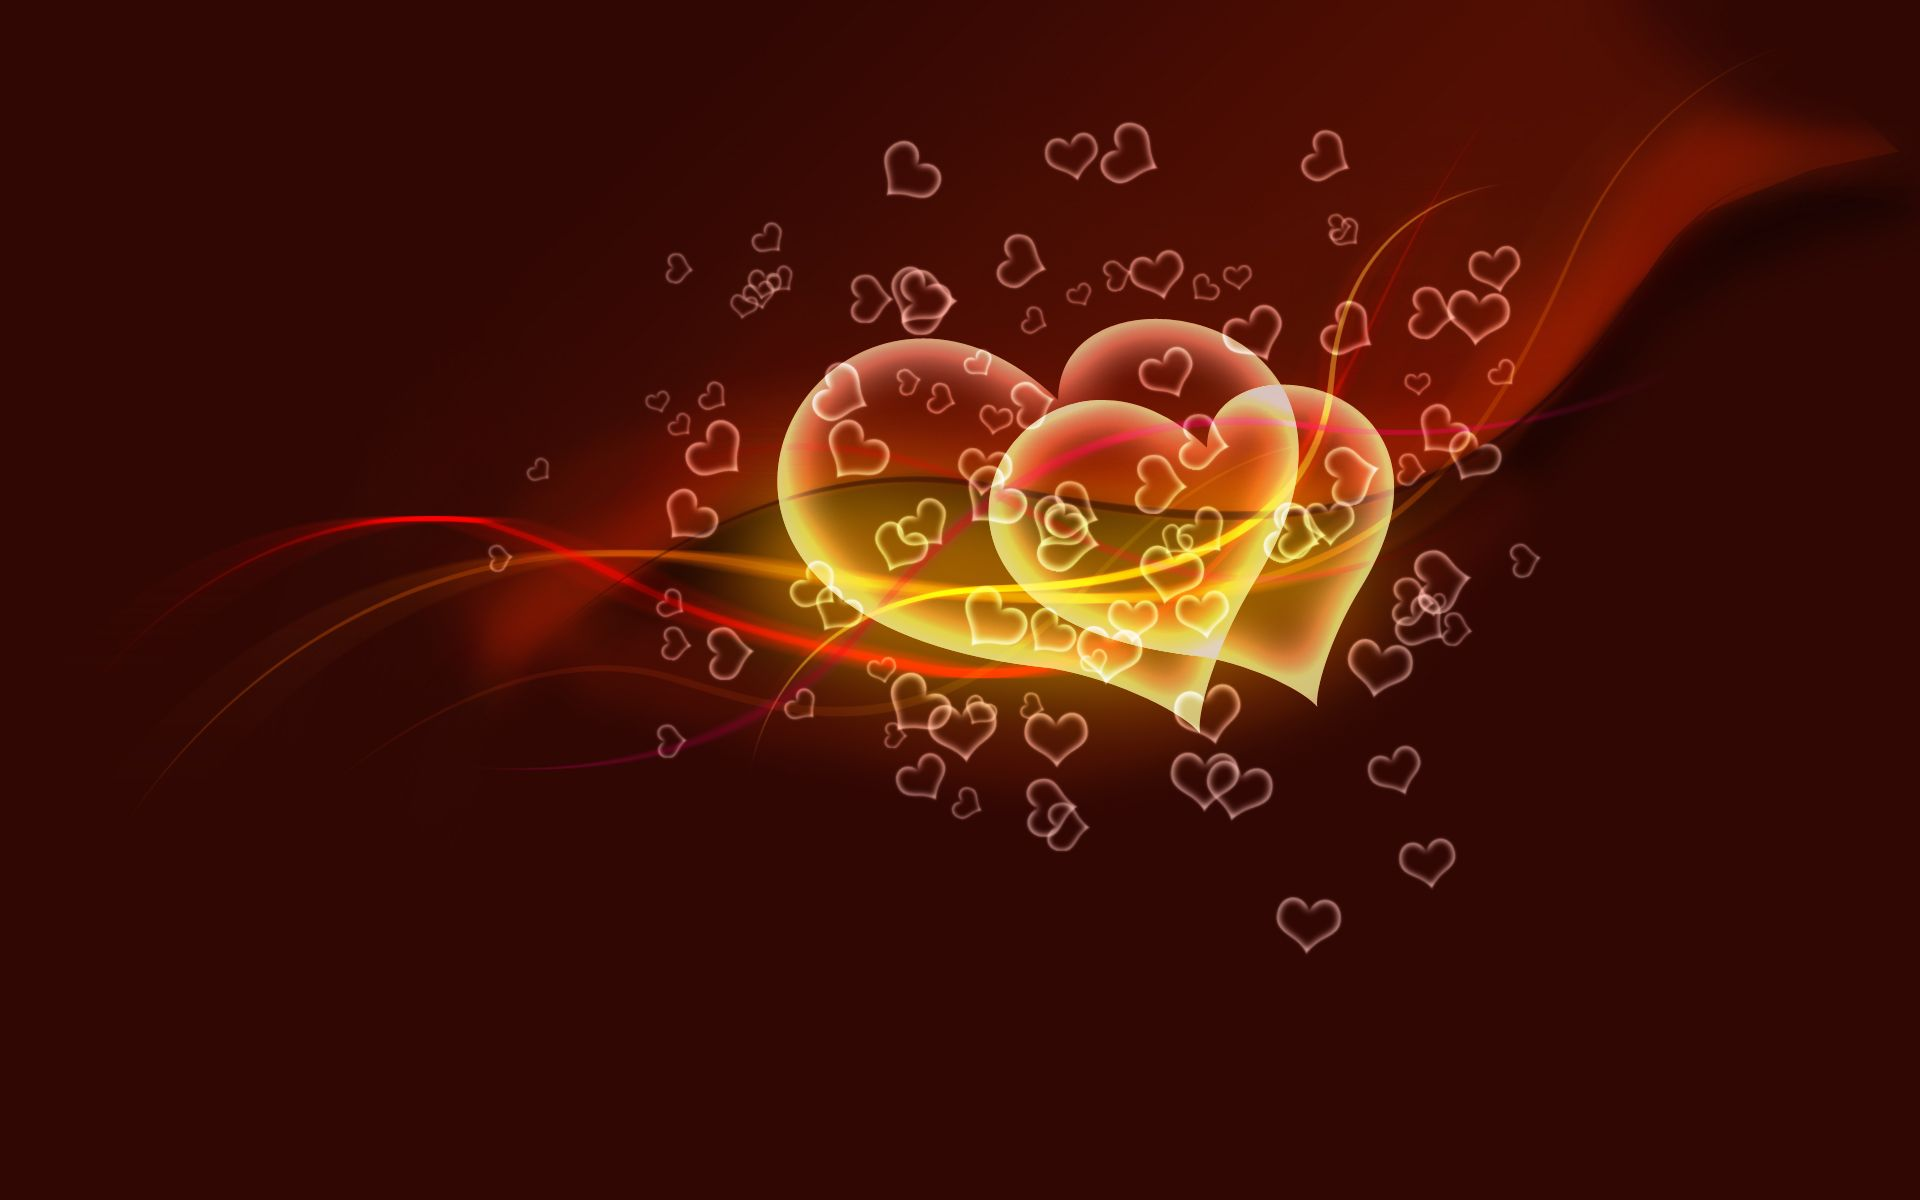 hearts | Flying Hearts Wallpapers | HD Wallpapers